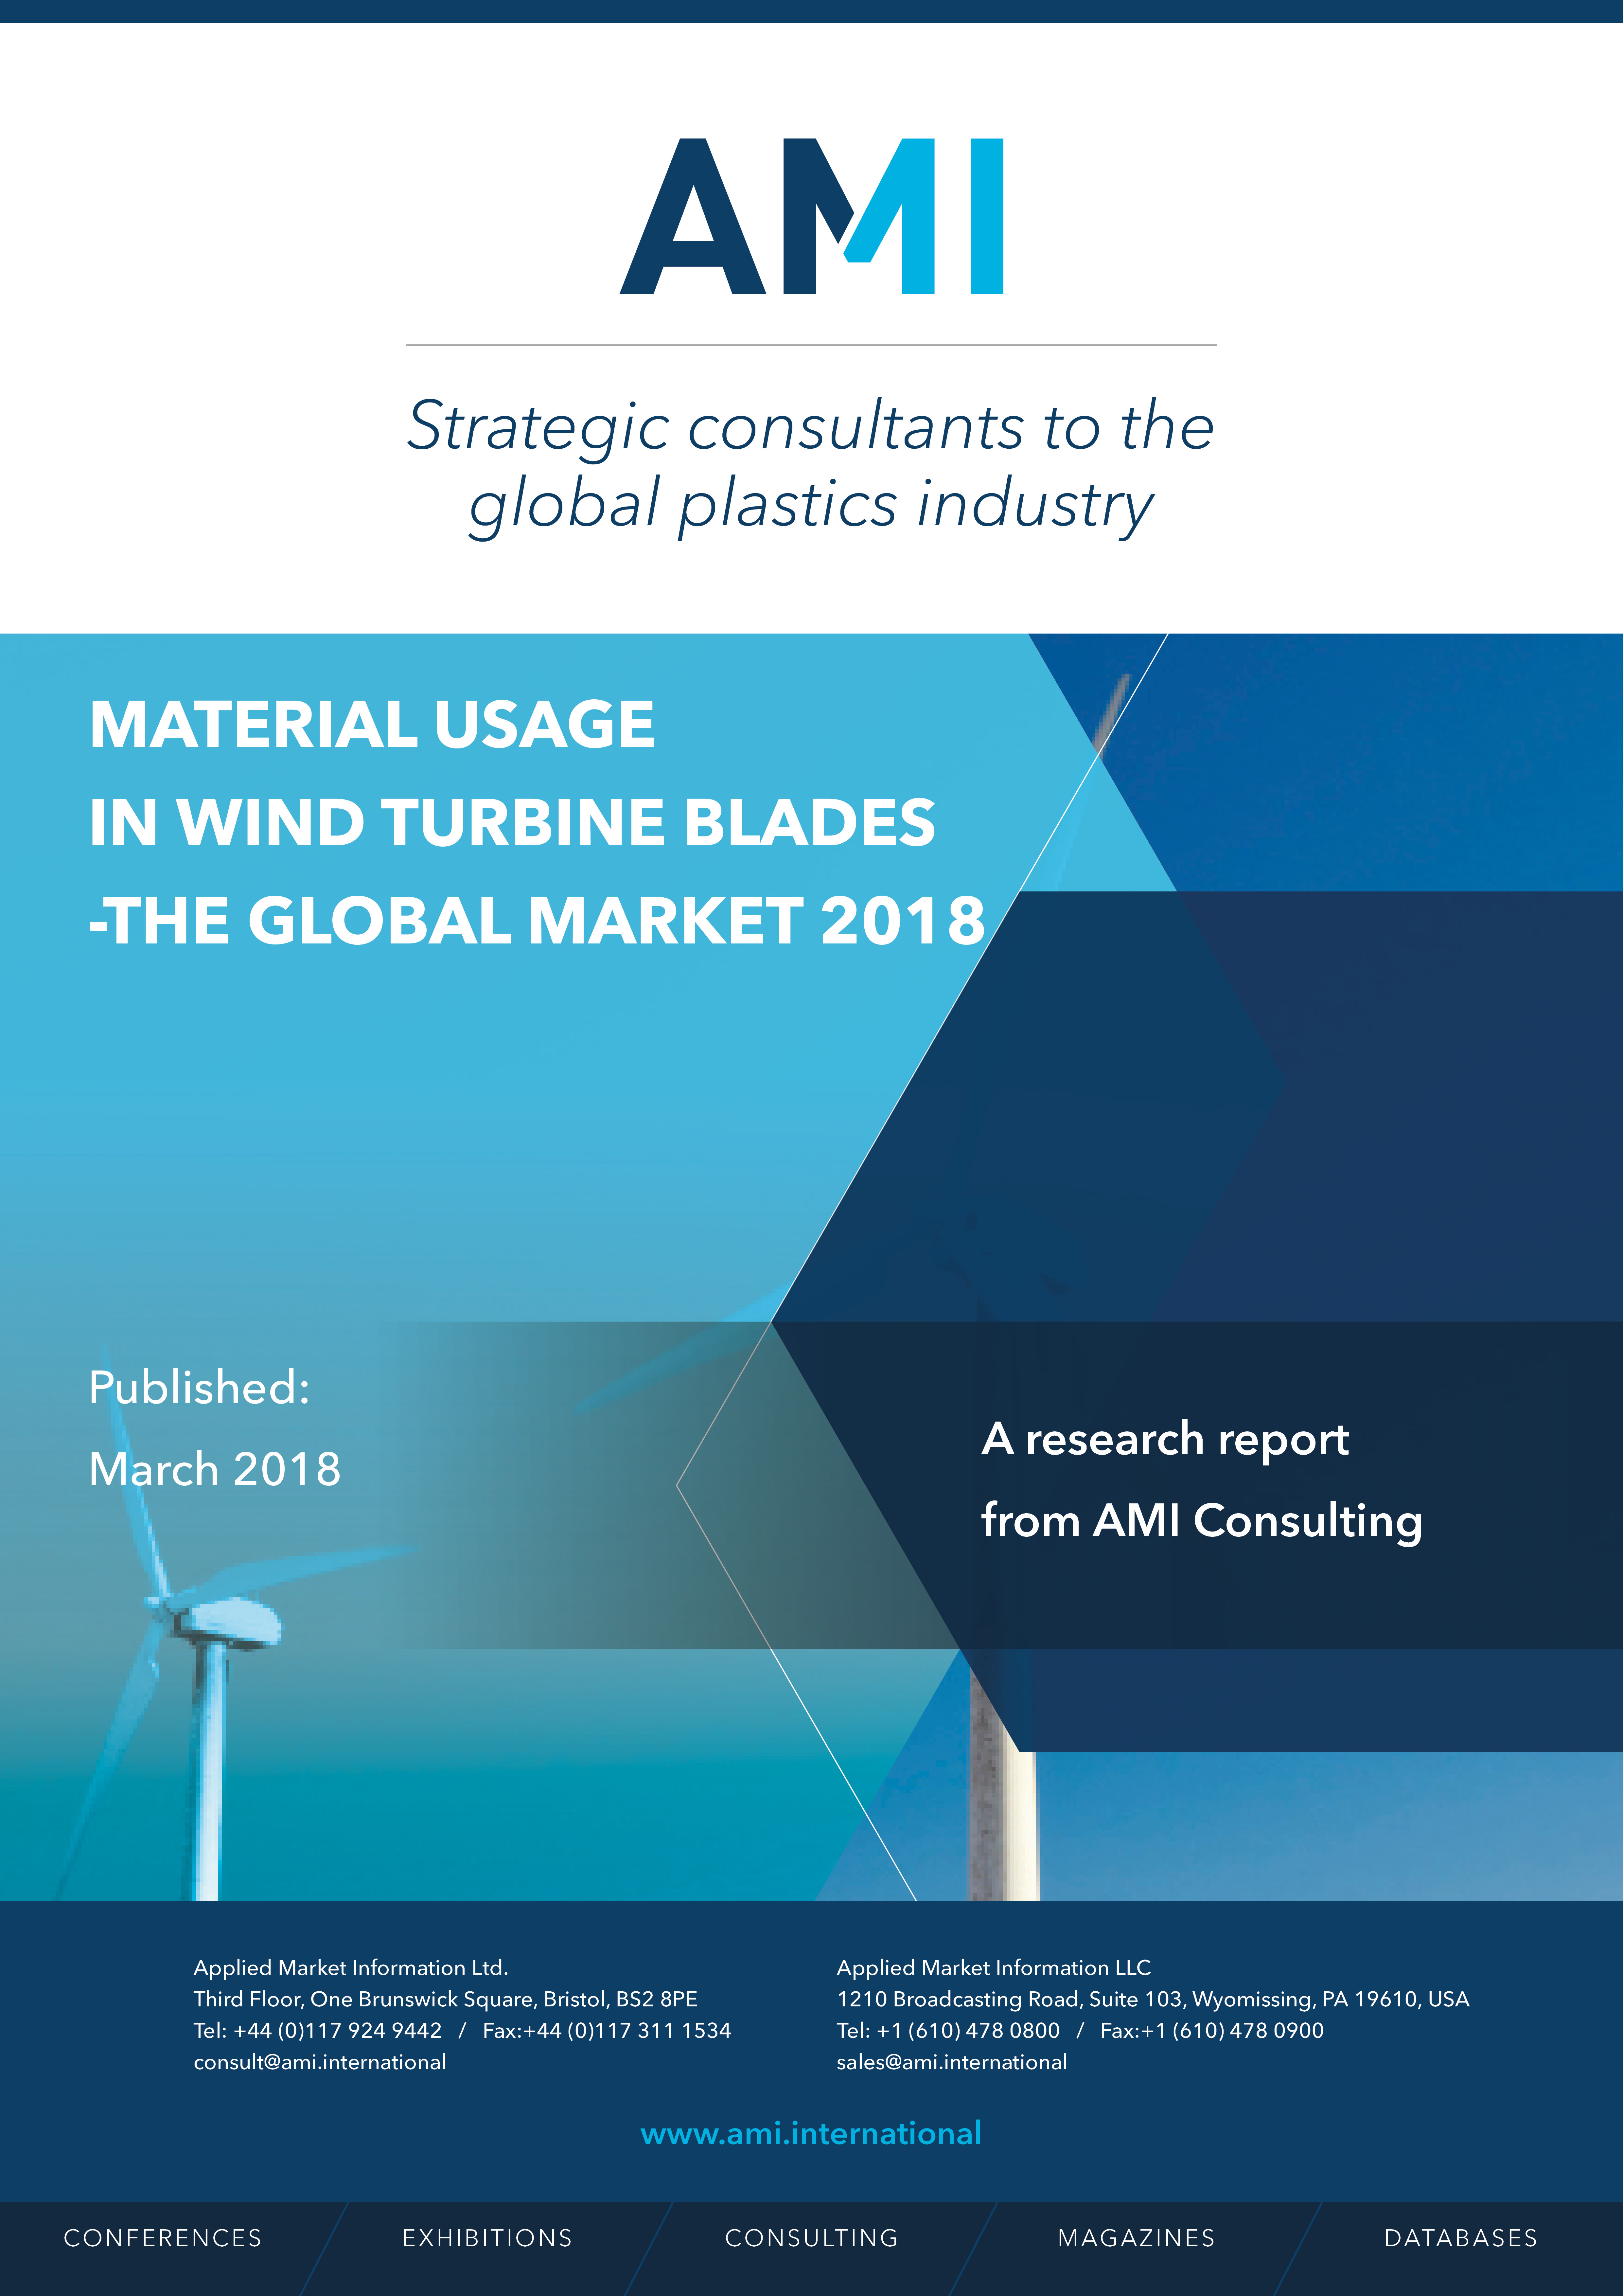 Materials usage in wind turbine blades - the global market